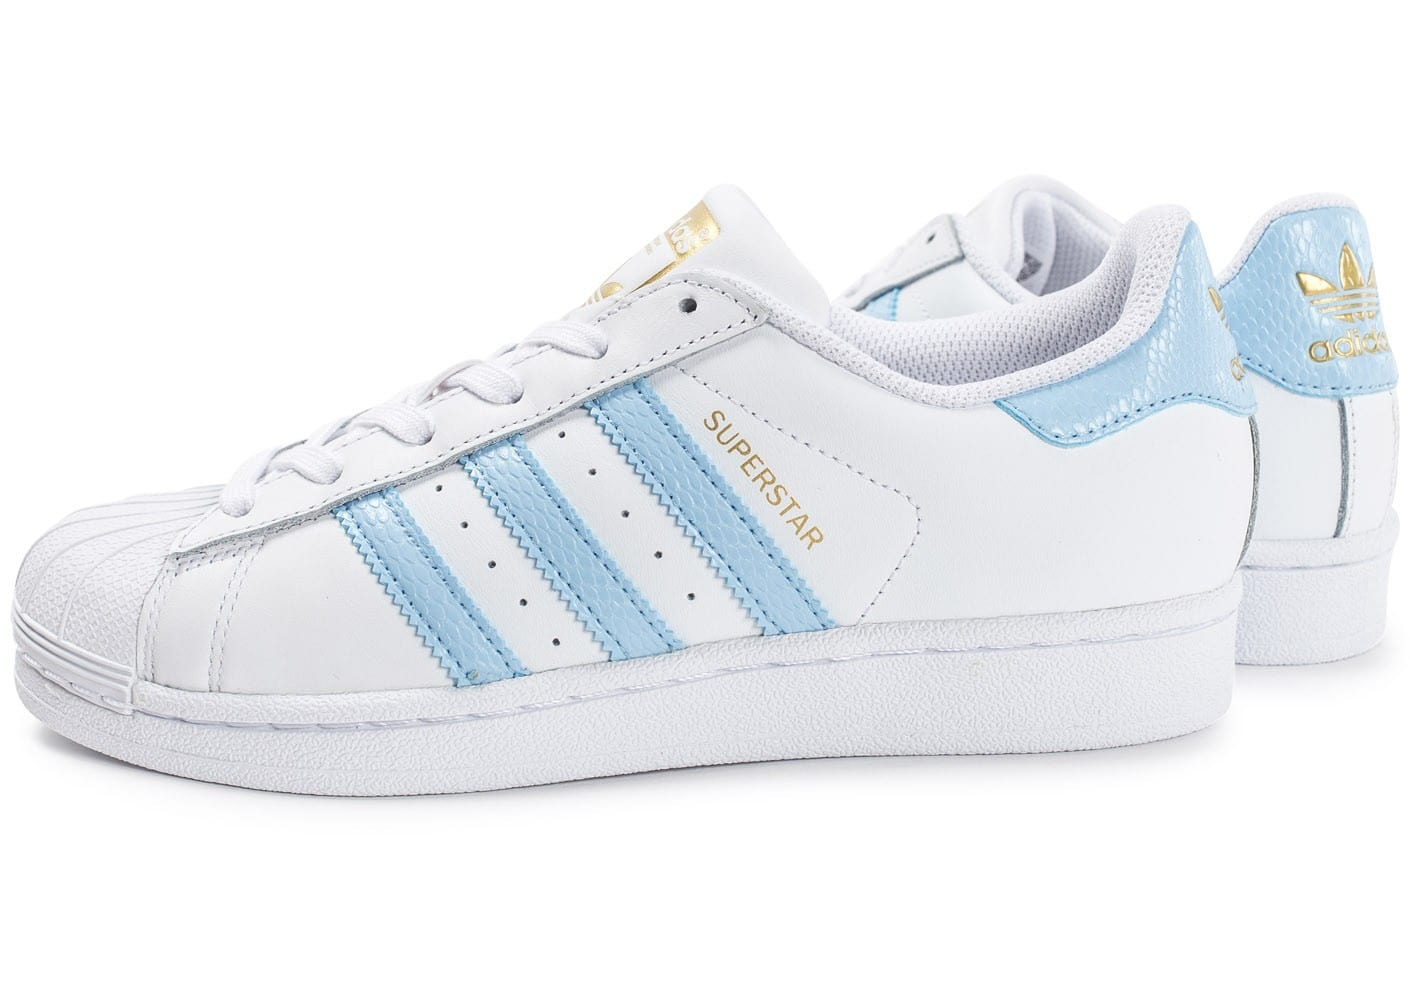 adidas superstar blanc et bleu chaussures adidas chausport. Black Bedroom Furniture Sets. Home Design Ideas